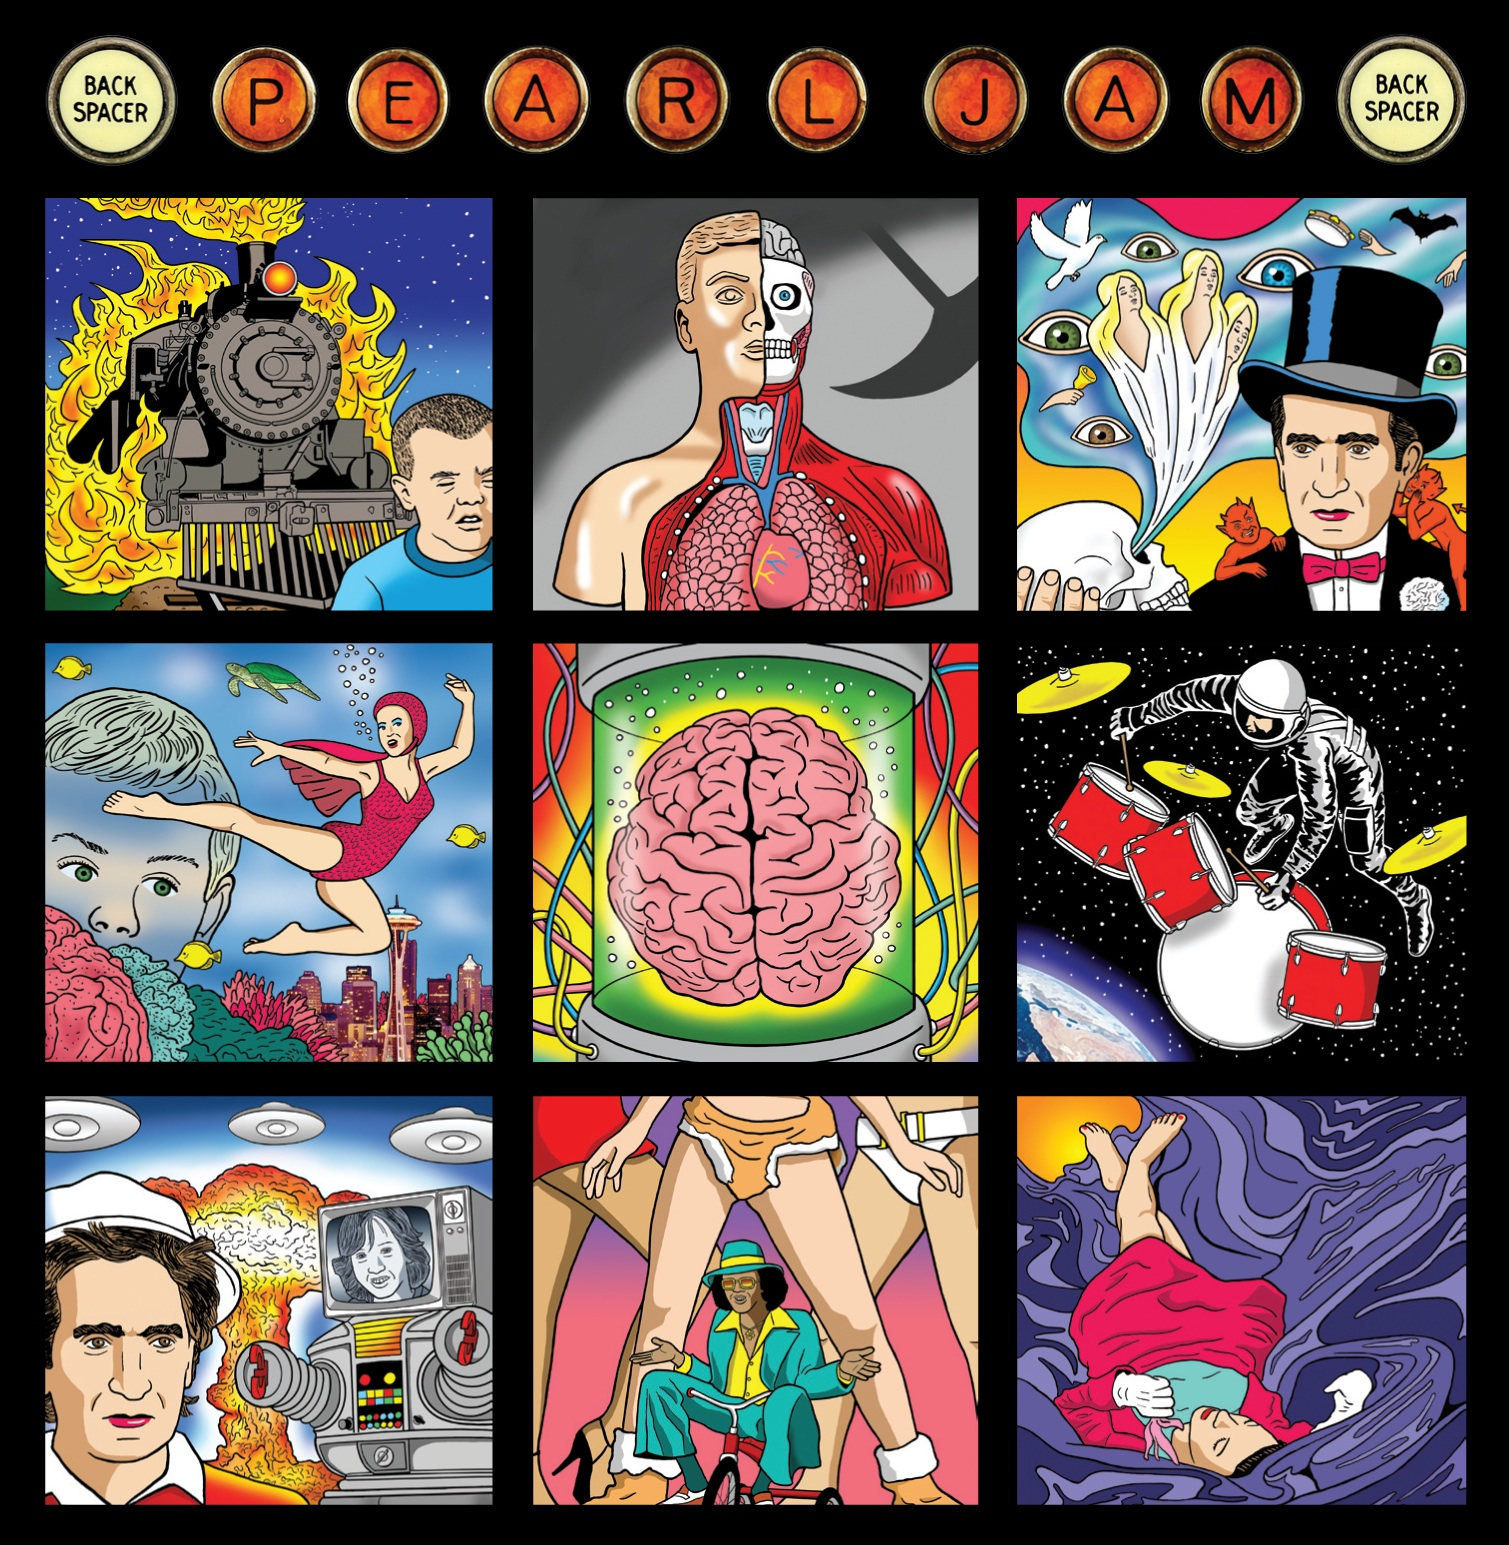 A Second-Generation Pearl Jam Fan Makes the Case for Backspacer 10 Years Later